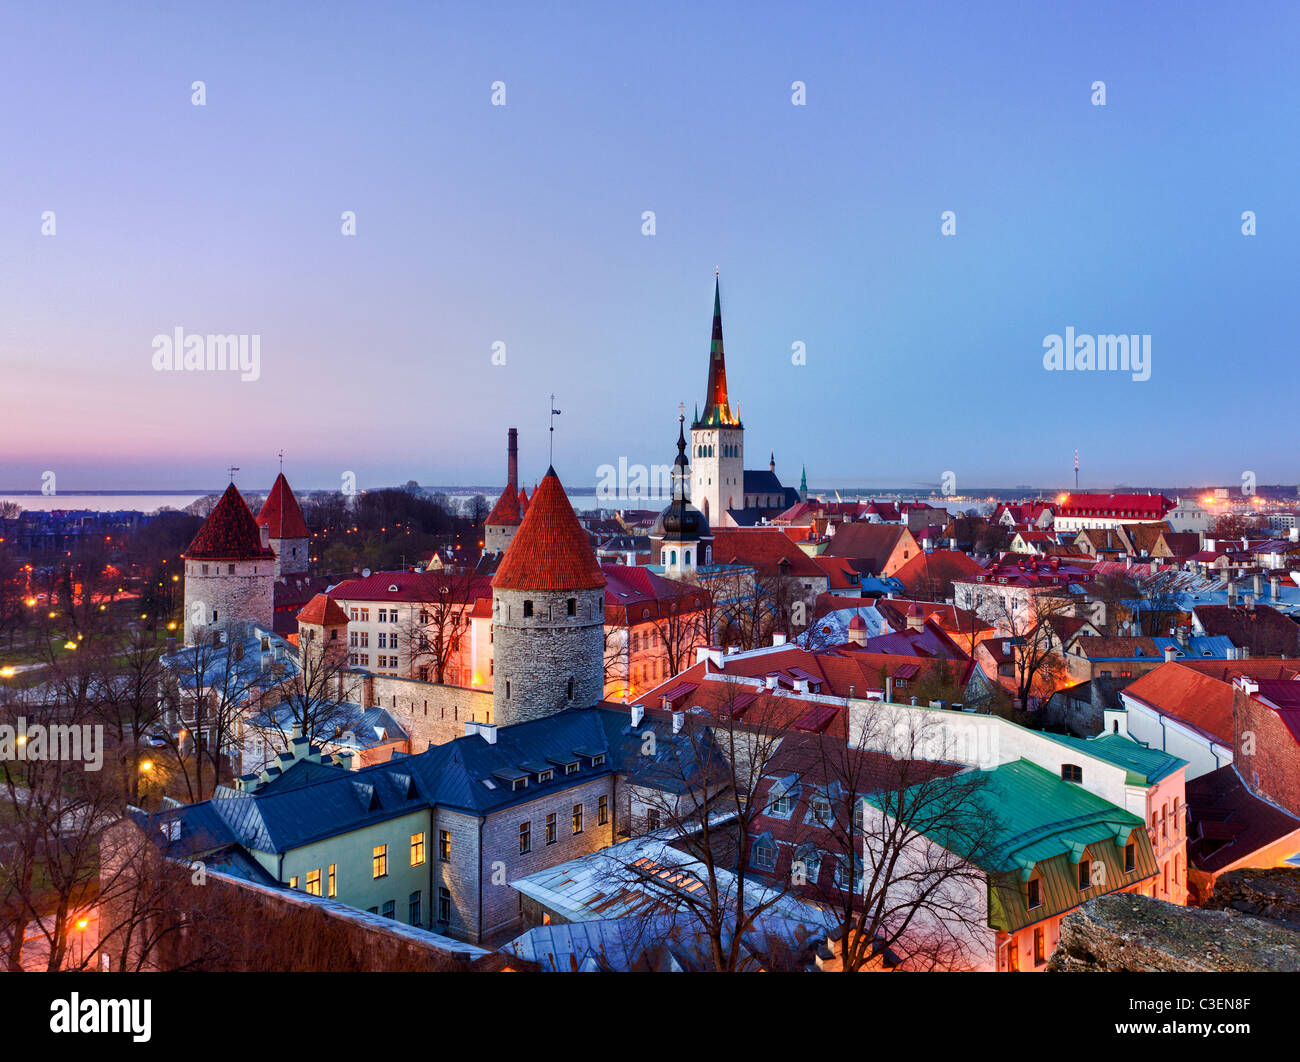 Capital of Estonia, Tallinn is famous for its World Heritage old town walls and cobbled streets. The old town is - Stock Image